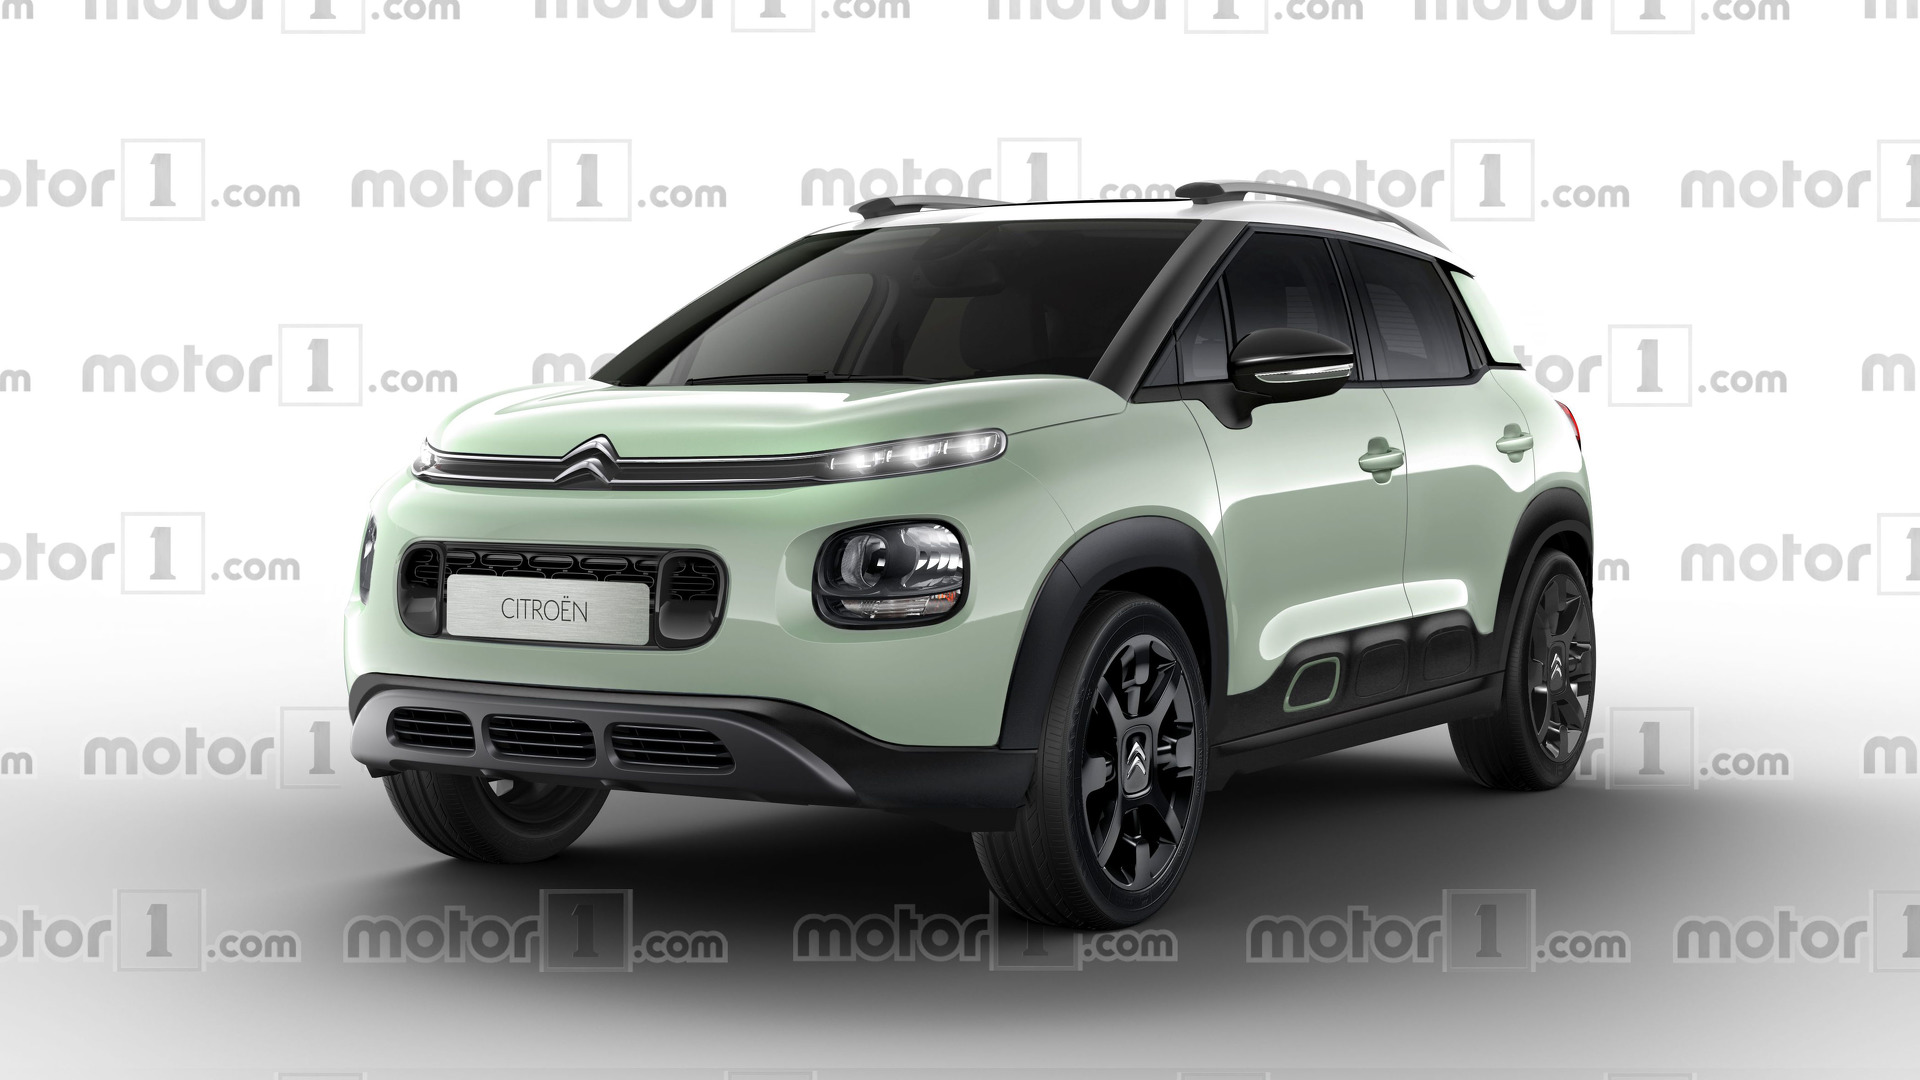 citroen c3 aircross render makes bold design statement. Black Bedroom Furniture Sets. Home Design Ideas